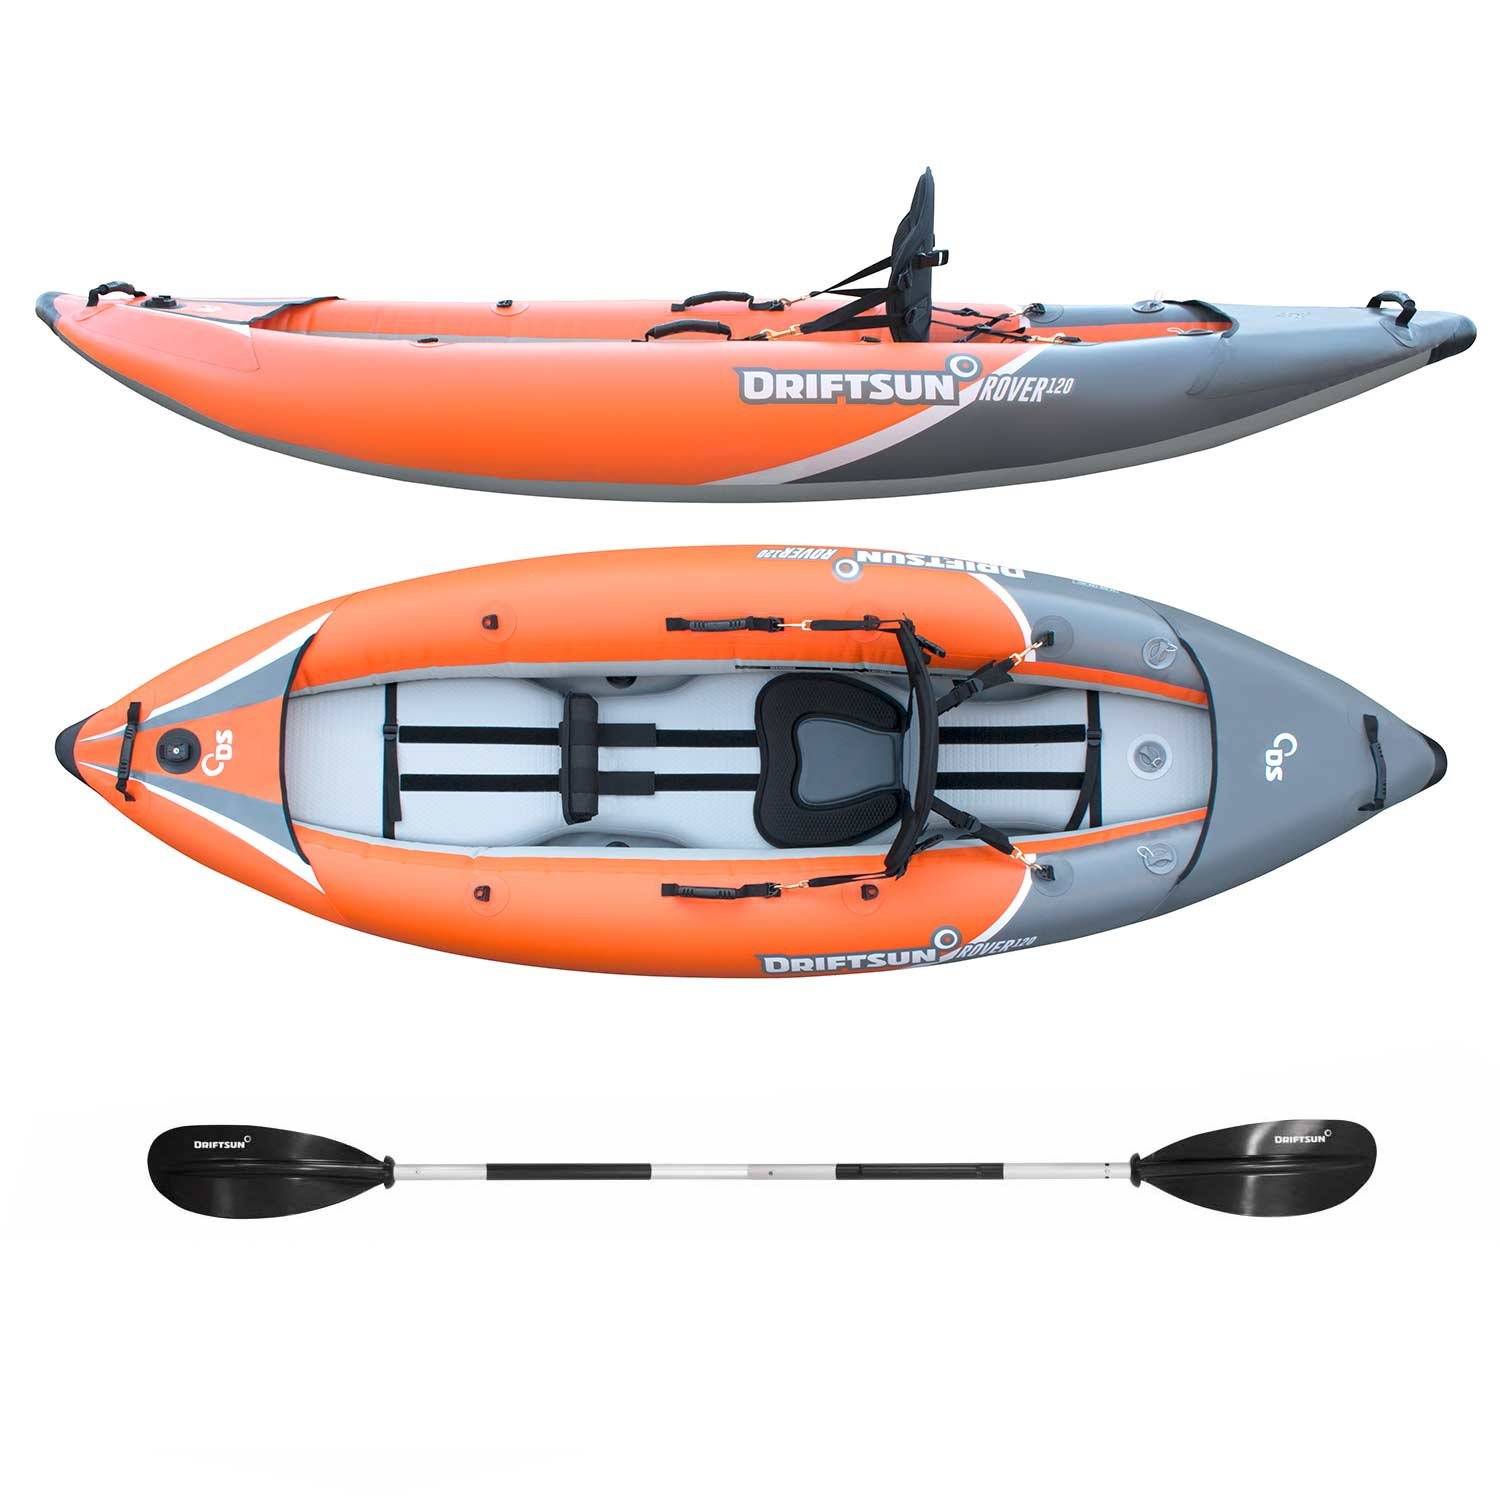 Driftsun Rover 120 Inflatable White-Water Kayak with High Pressure Floor and EVA Padded Seats with High Back Support, Includes Action Cam Mount, Aluminum Paddles, Pump and More by Driftsun